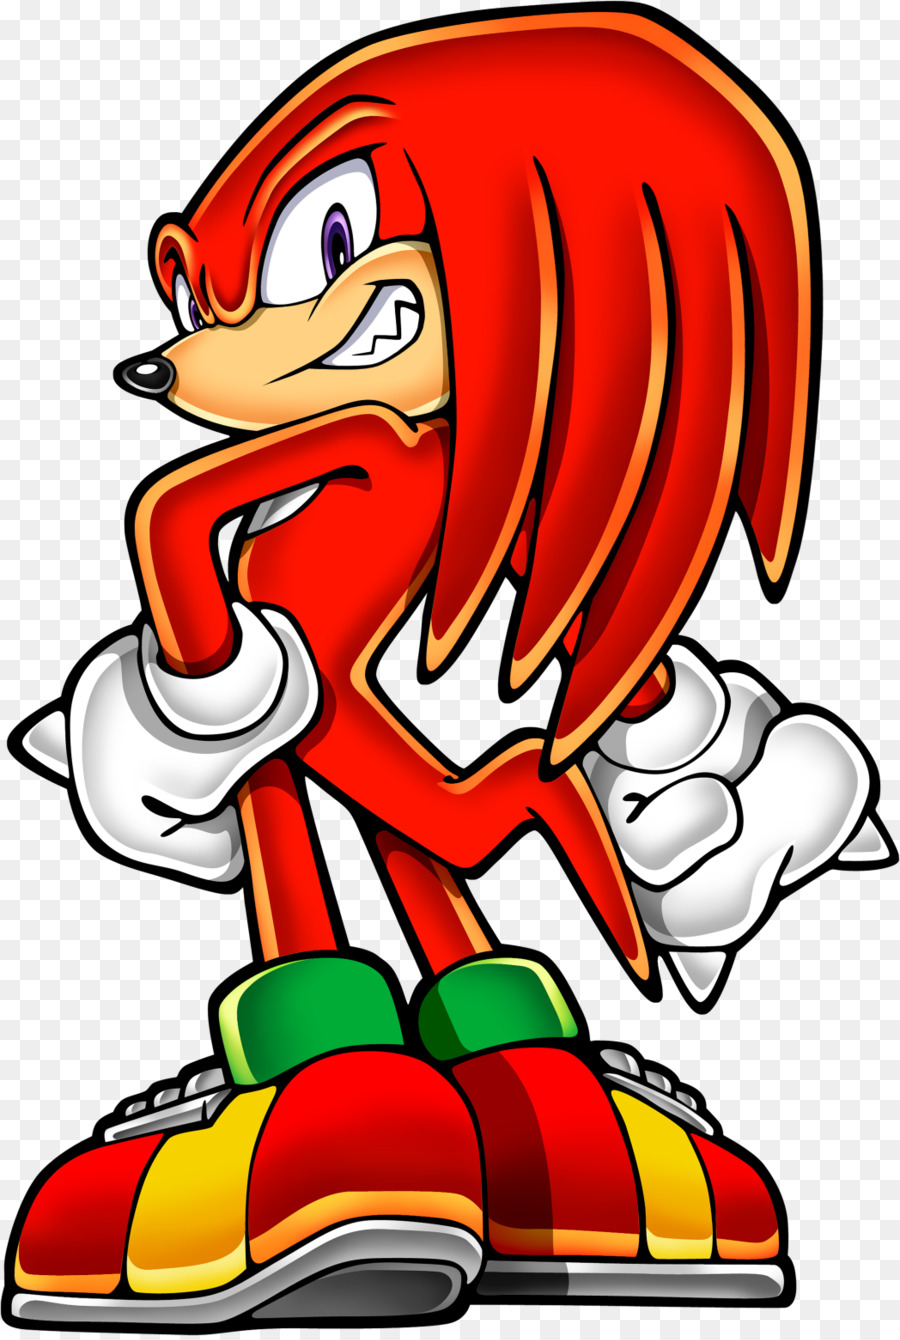 900x1340 Knuckles Echidna Sonic Amp Knuckles Sonic Advance 2 Sonic